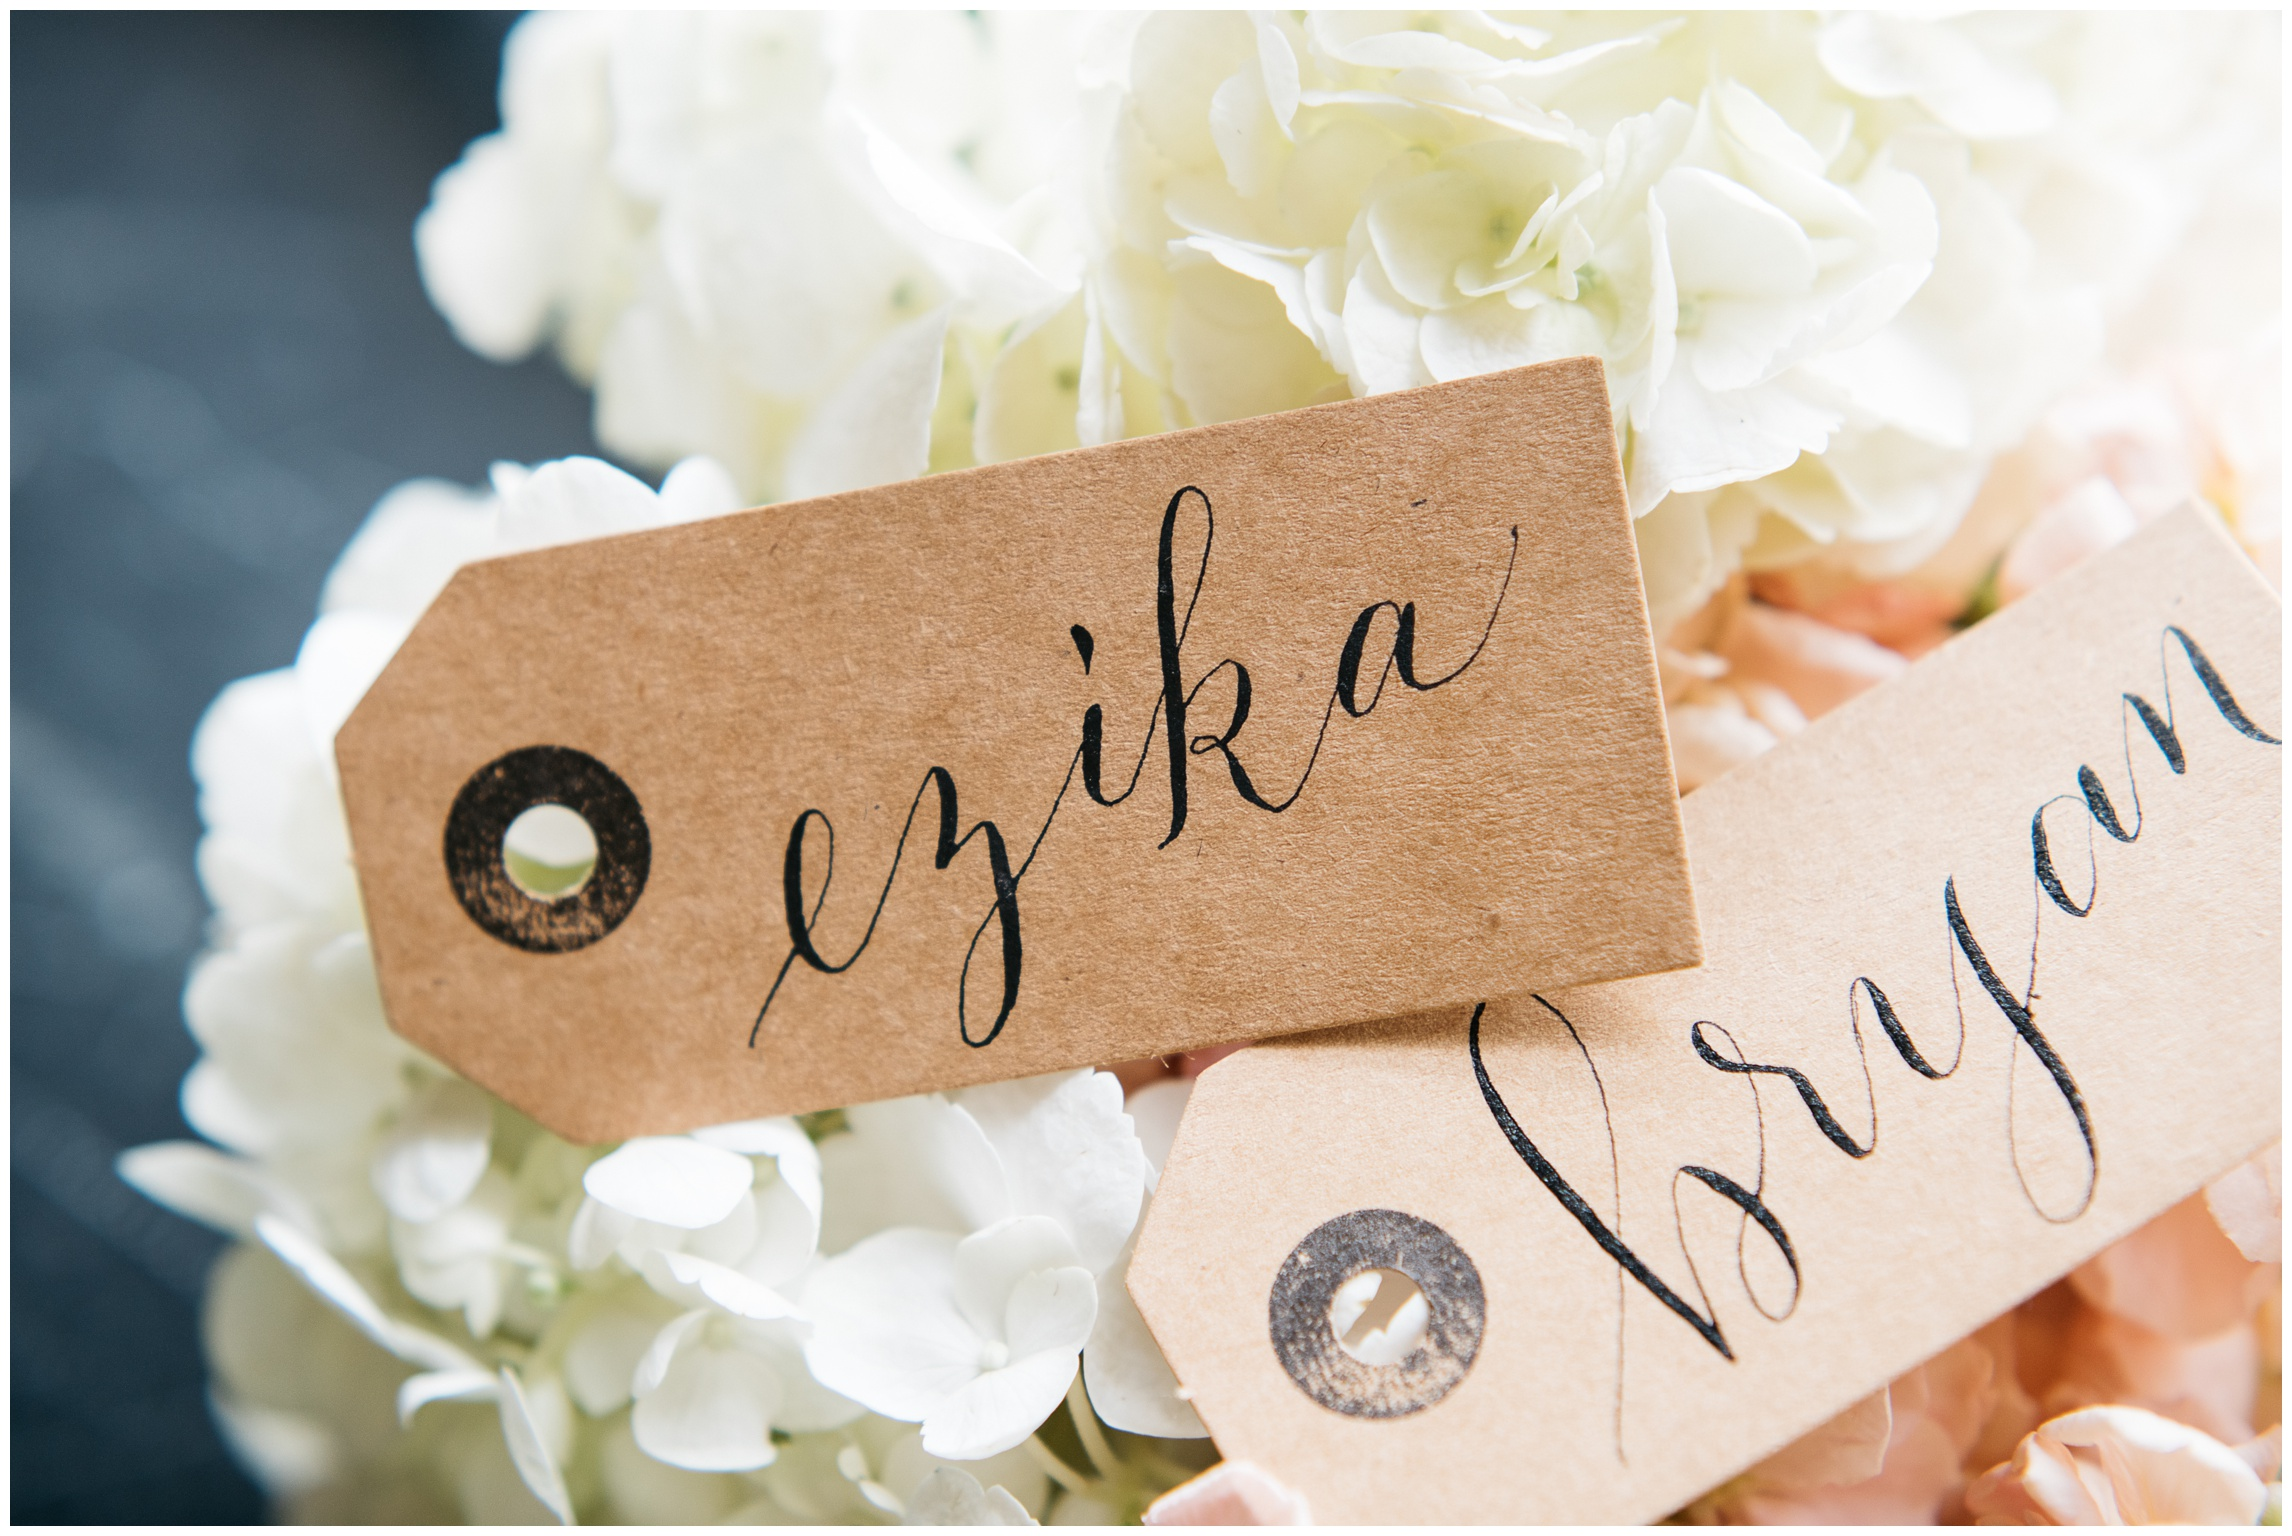 Beautifully hand written name tags on white flowers in the soft New Orleans light.  Calligraphy by Natalie Carrasco of Avo Ink. Film photography by Sonja Salzburg of Sonja K Photography.